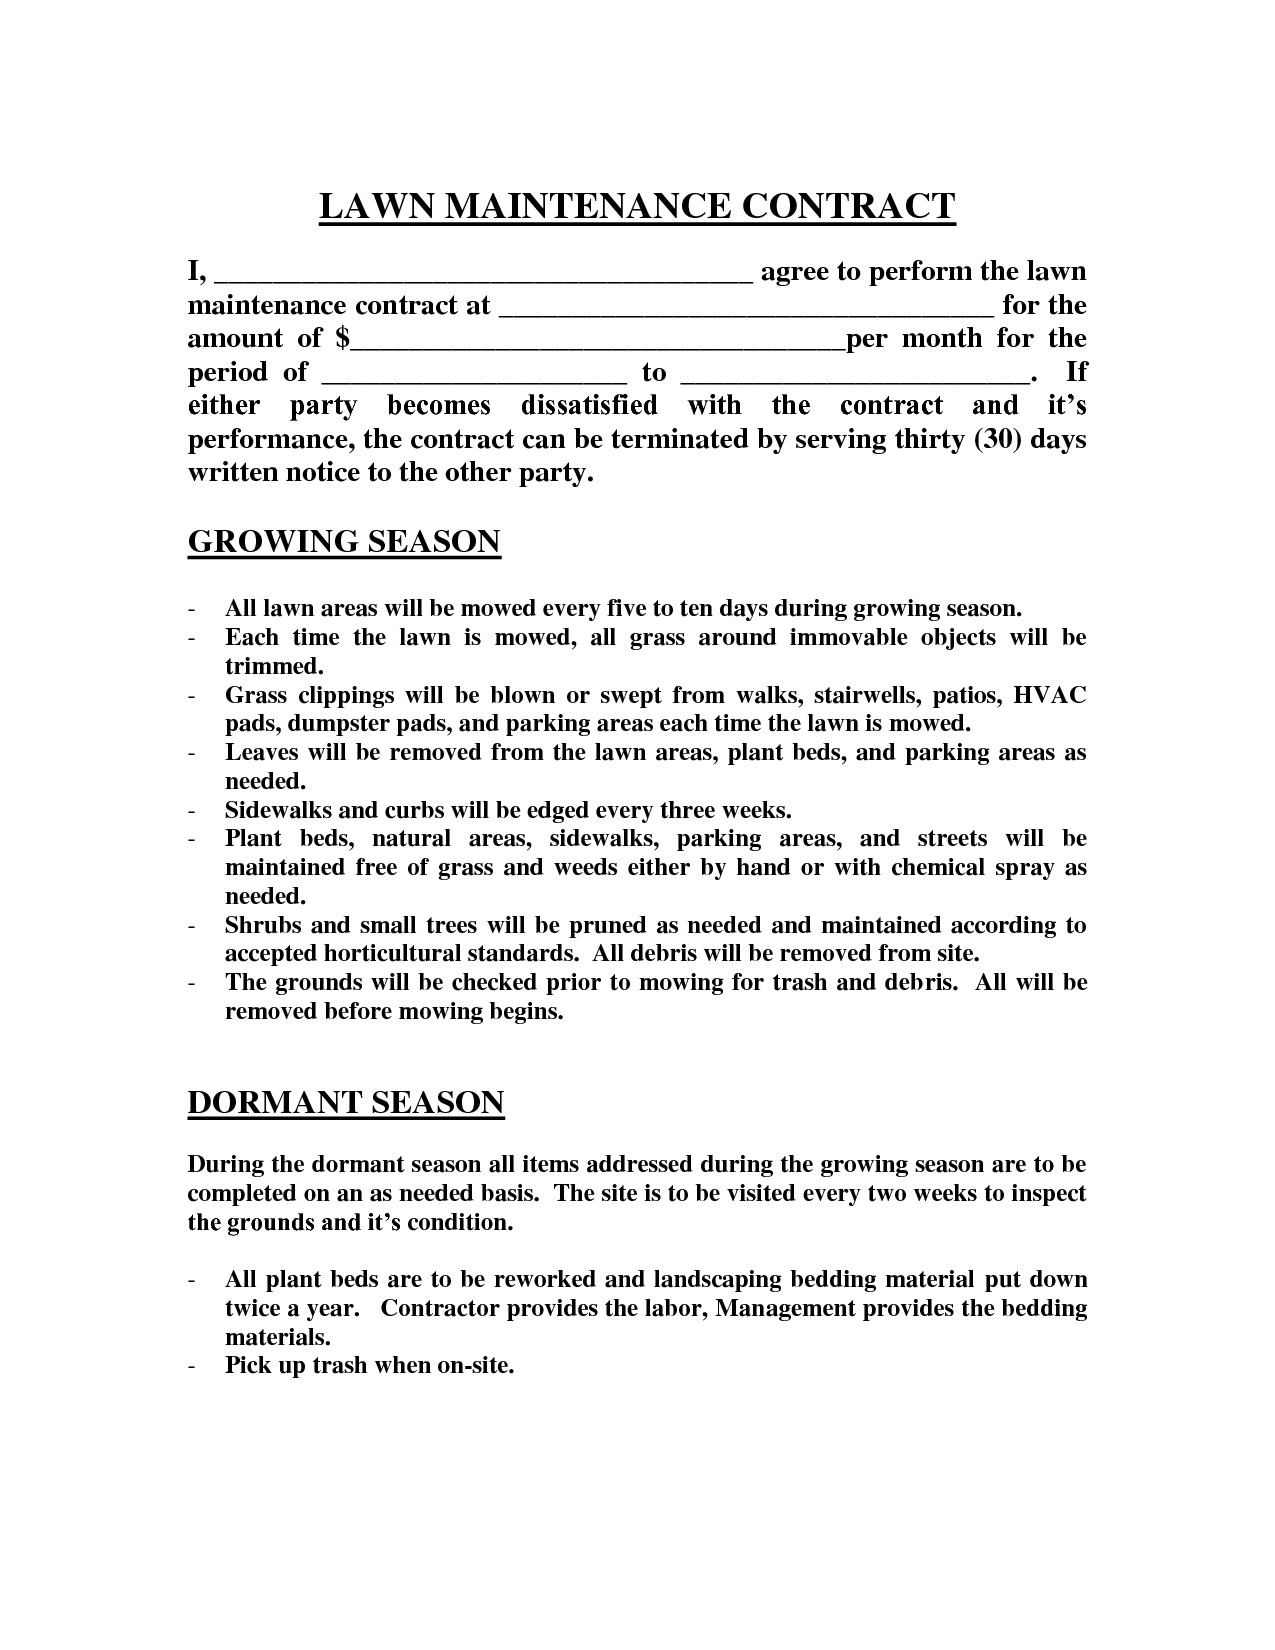 Lawn Care Bid Template Lawn Maintenance Contract Agreement Free Printable Documents